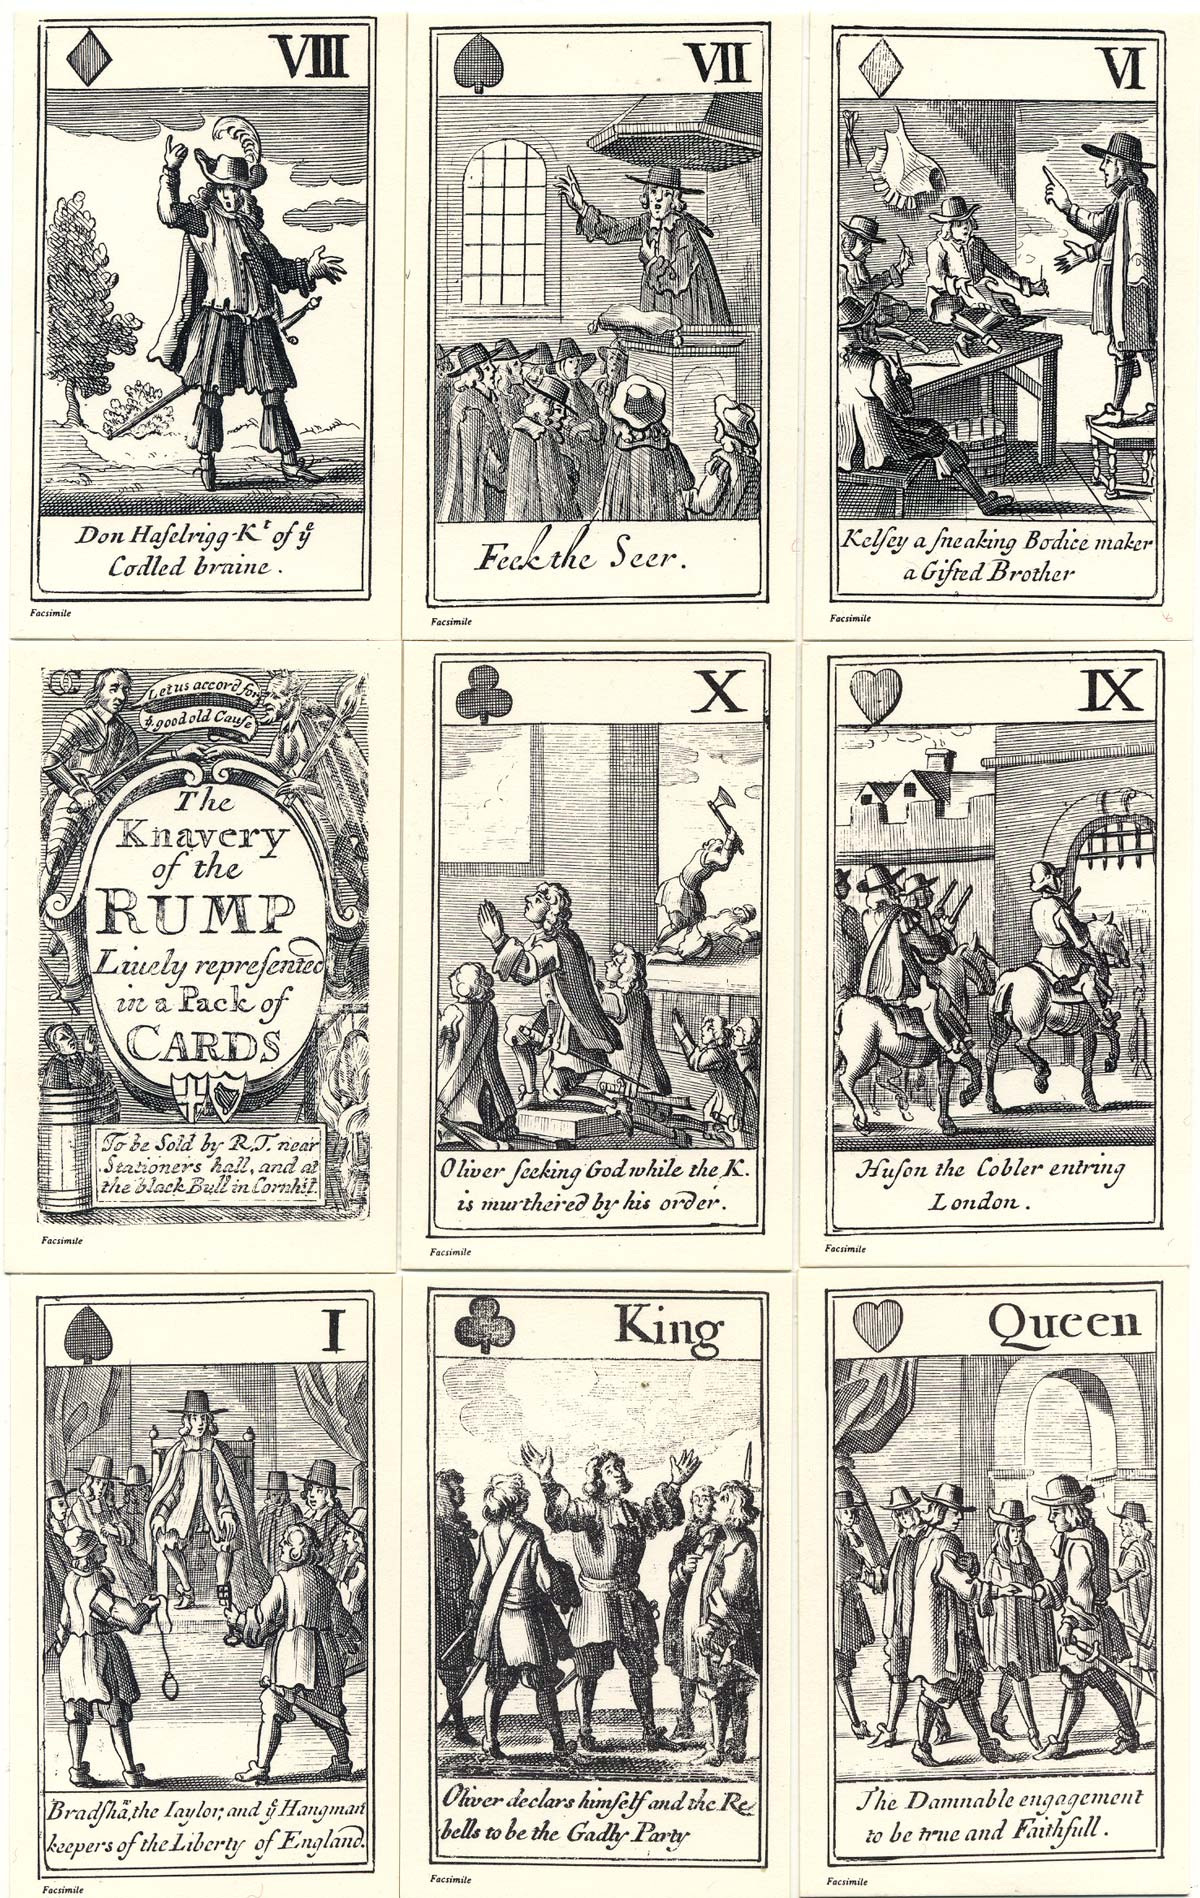 The Knavery of the Rump playing cards are a satirical portrayal of Cromwell's Government during the period 1648-53